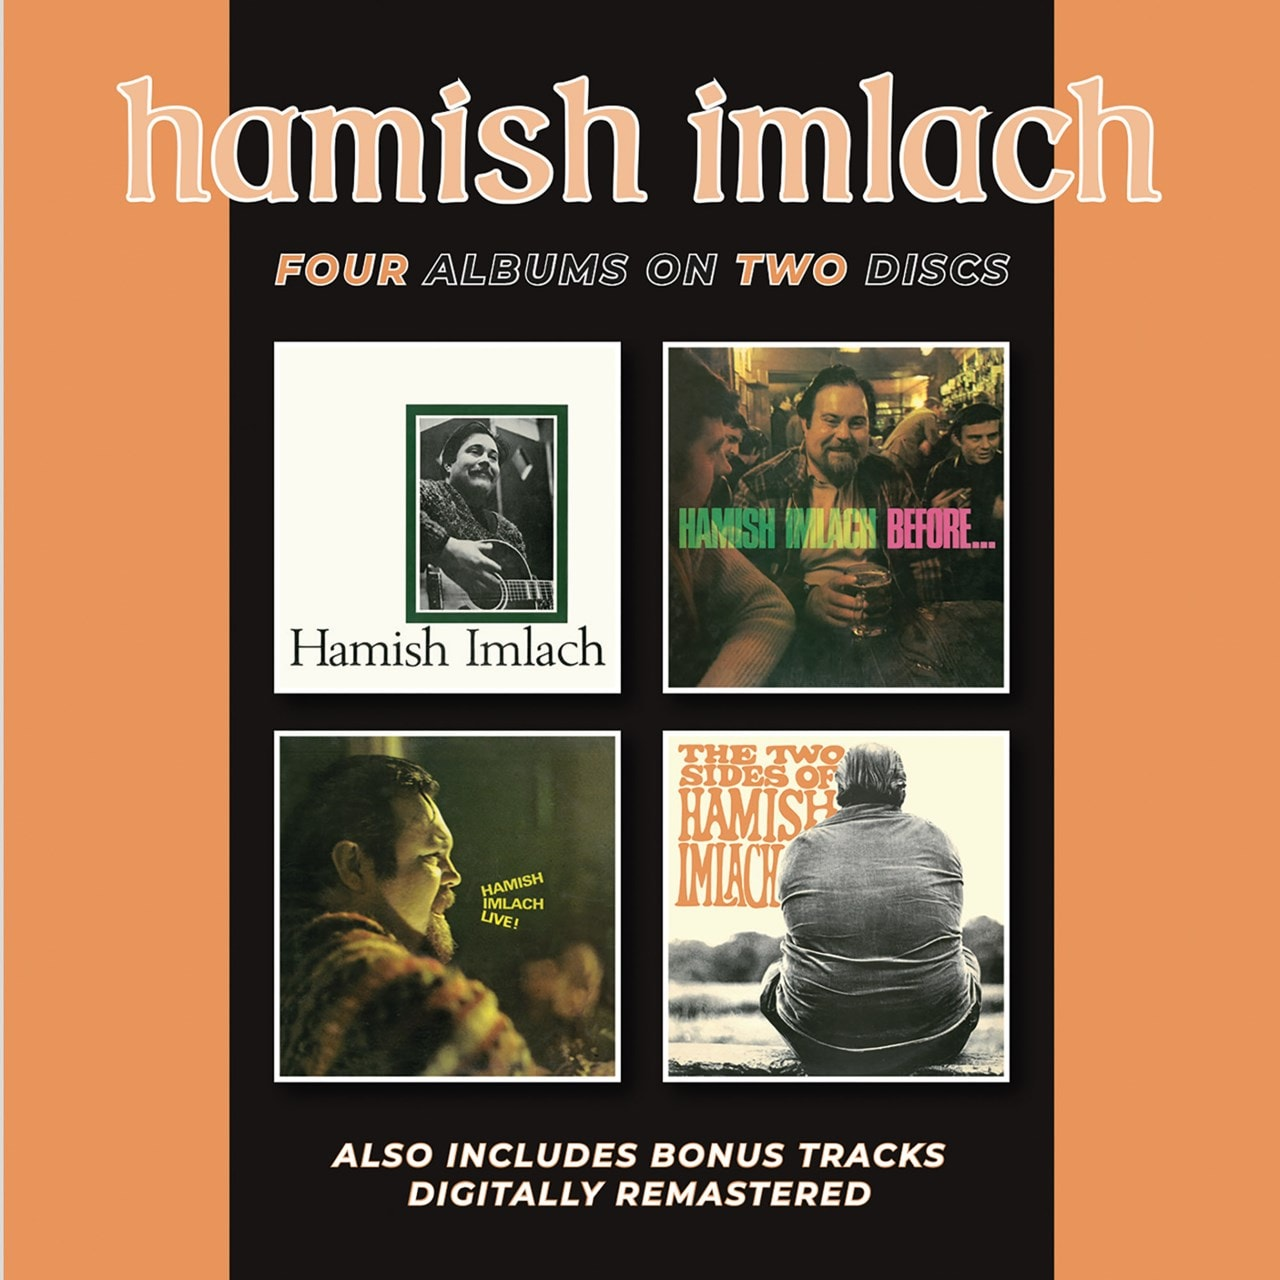 Hamish Imlach/Before and After/Live!/The Two Sides of Hamish I... - 1